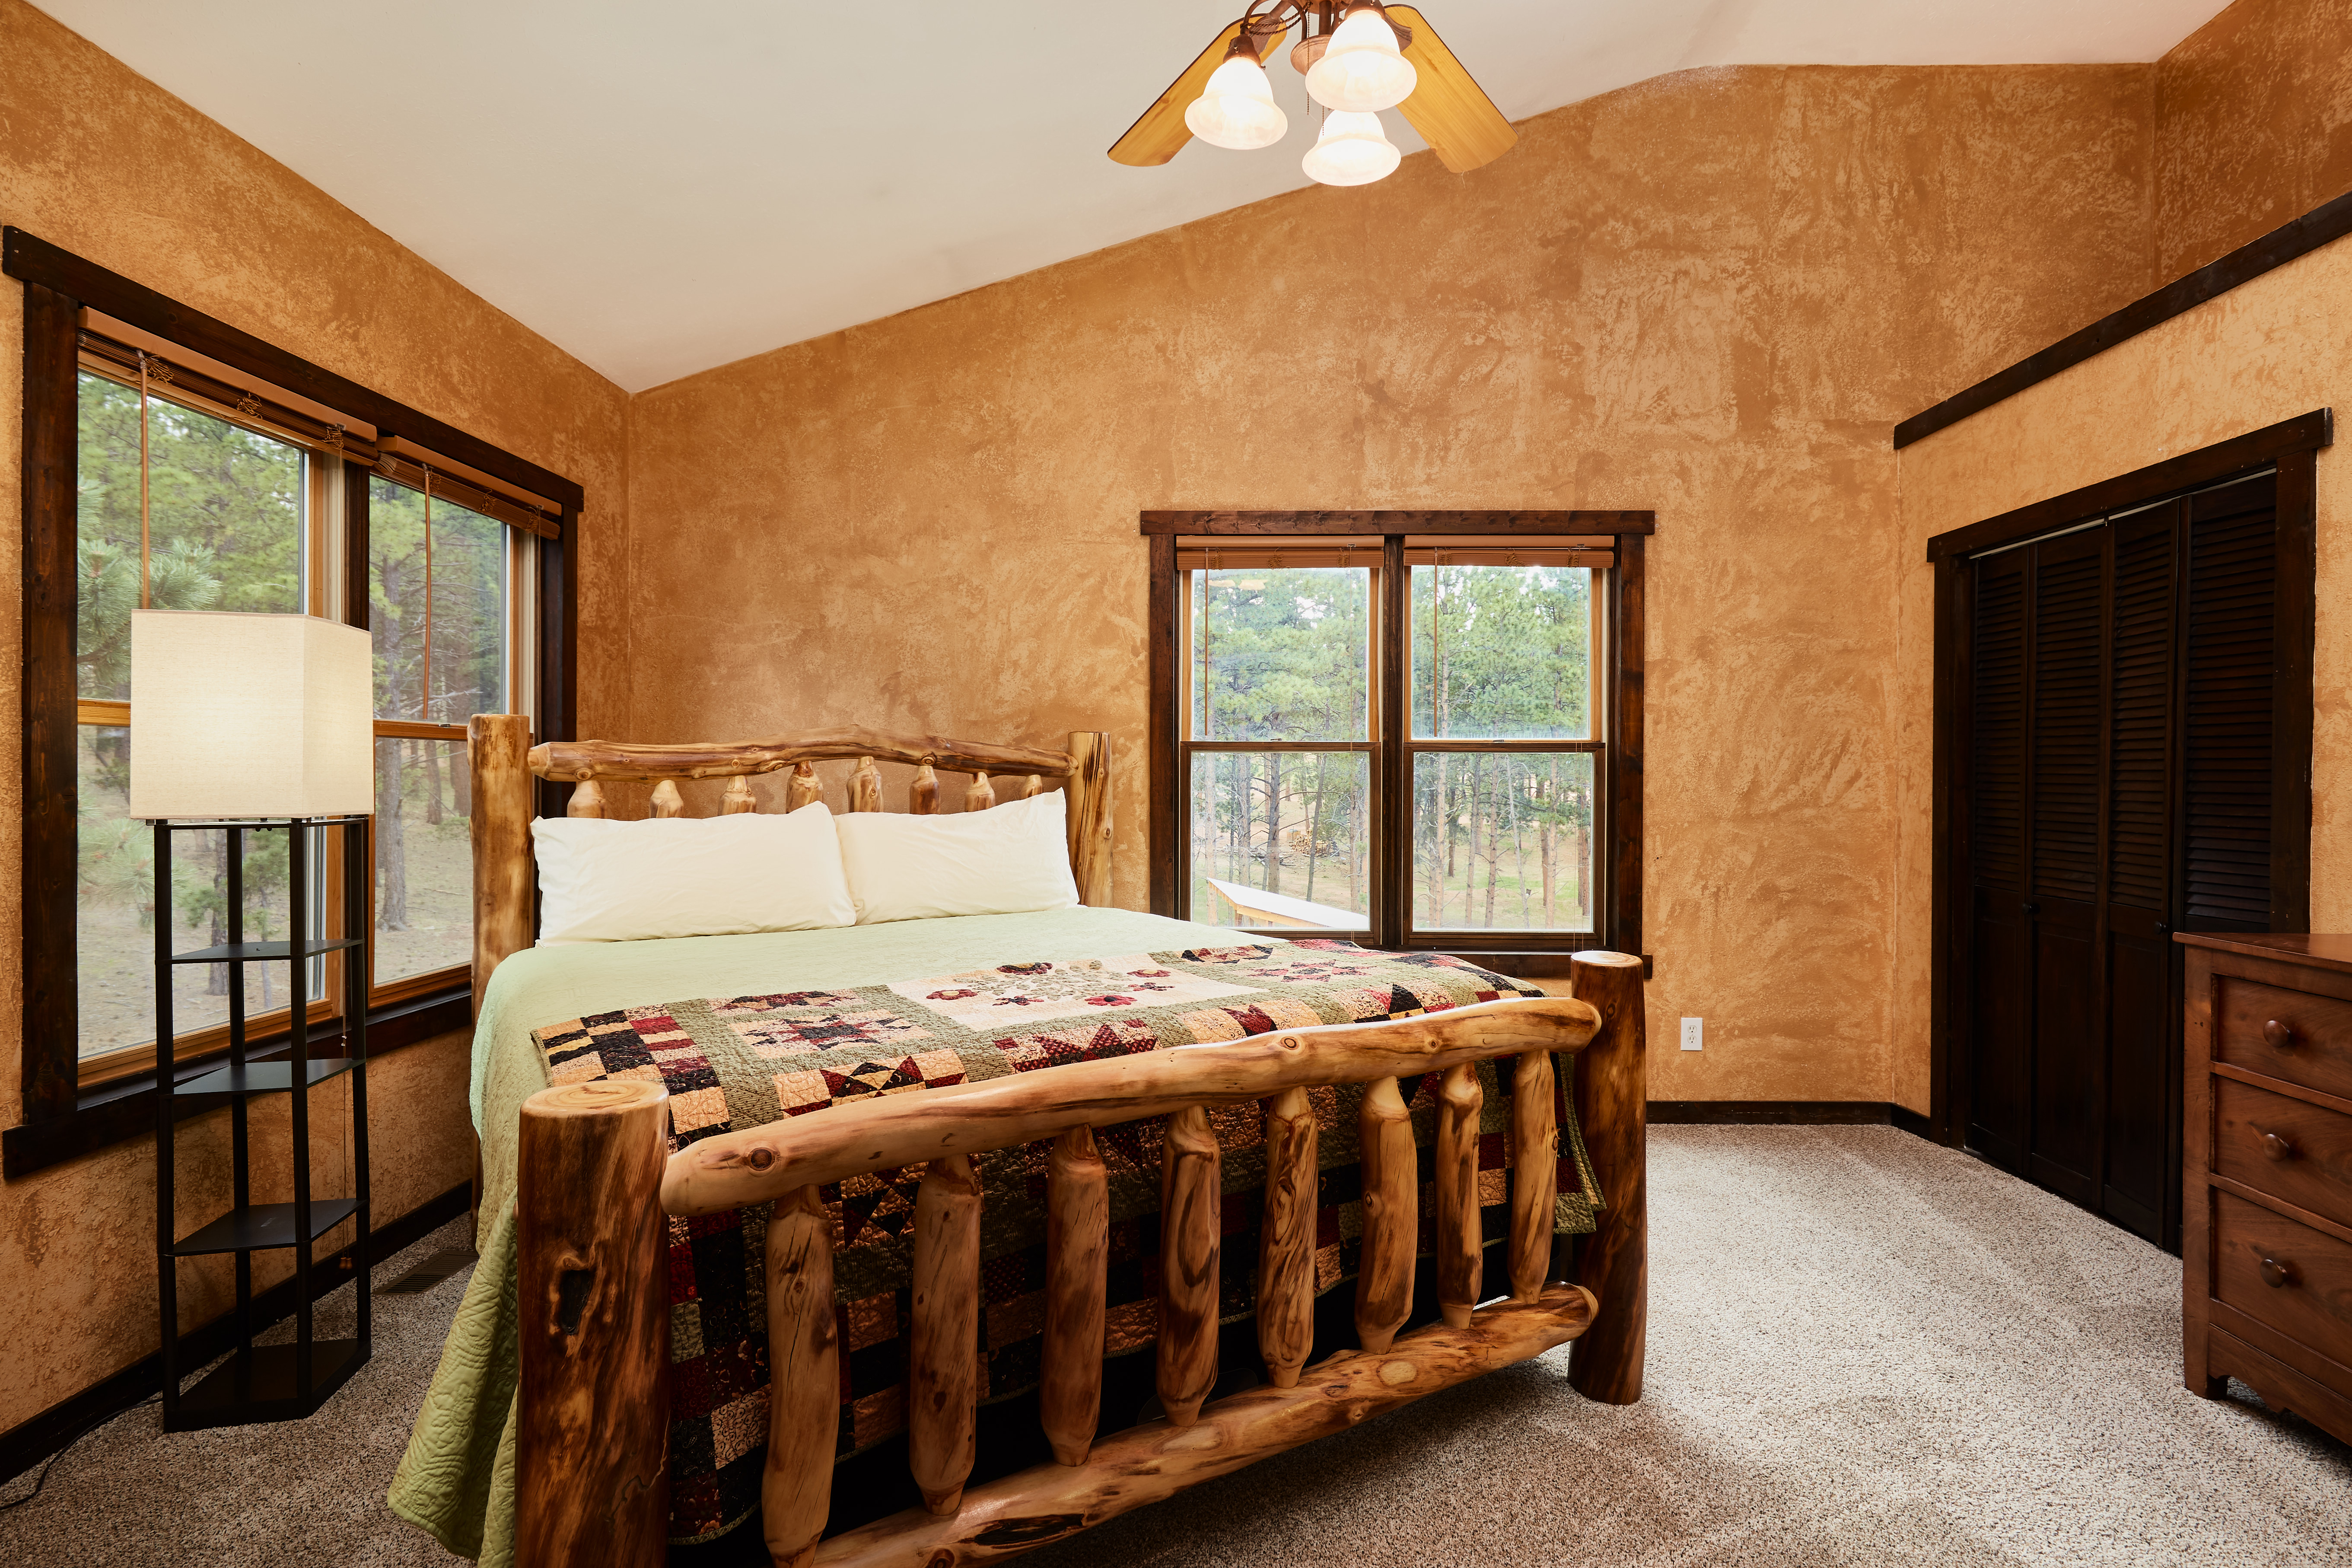 Upstairs, the master bedroom has large vaulted ceilings.